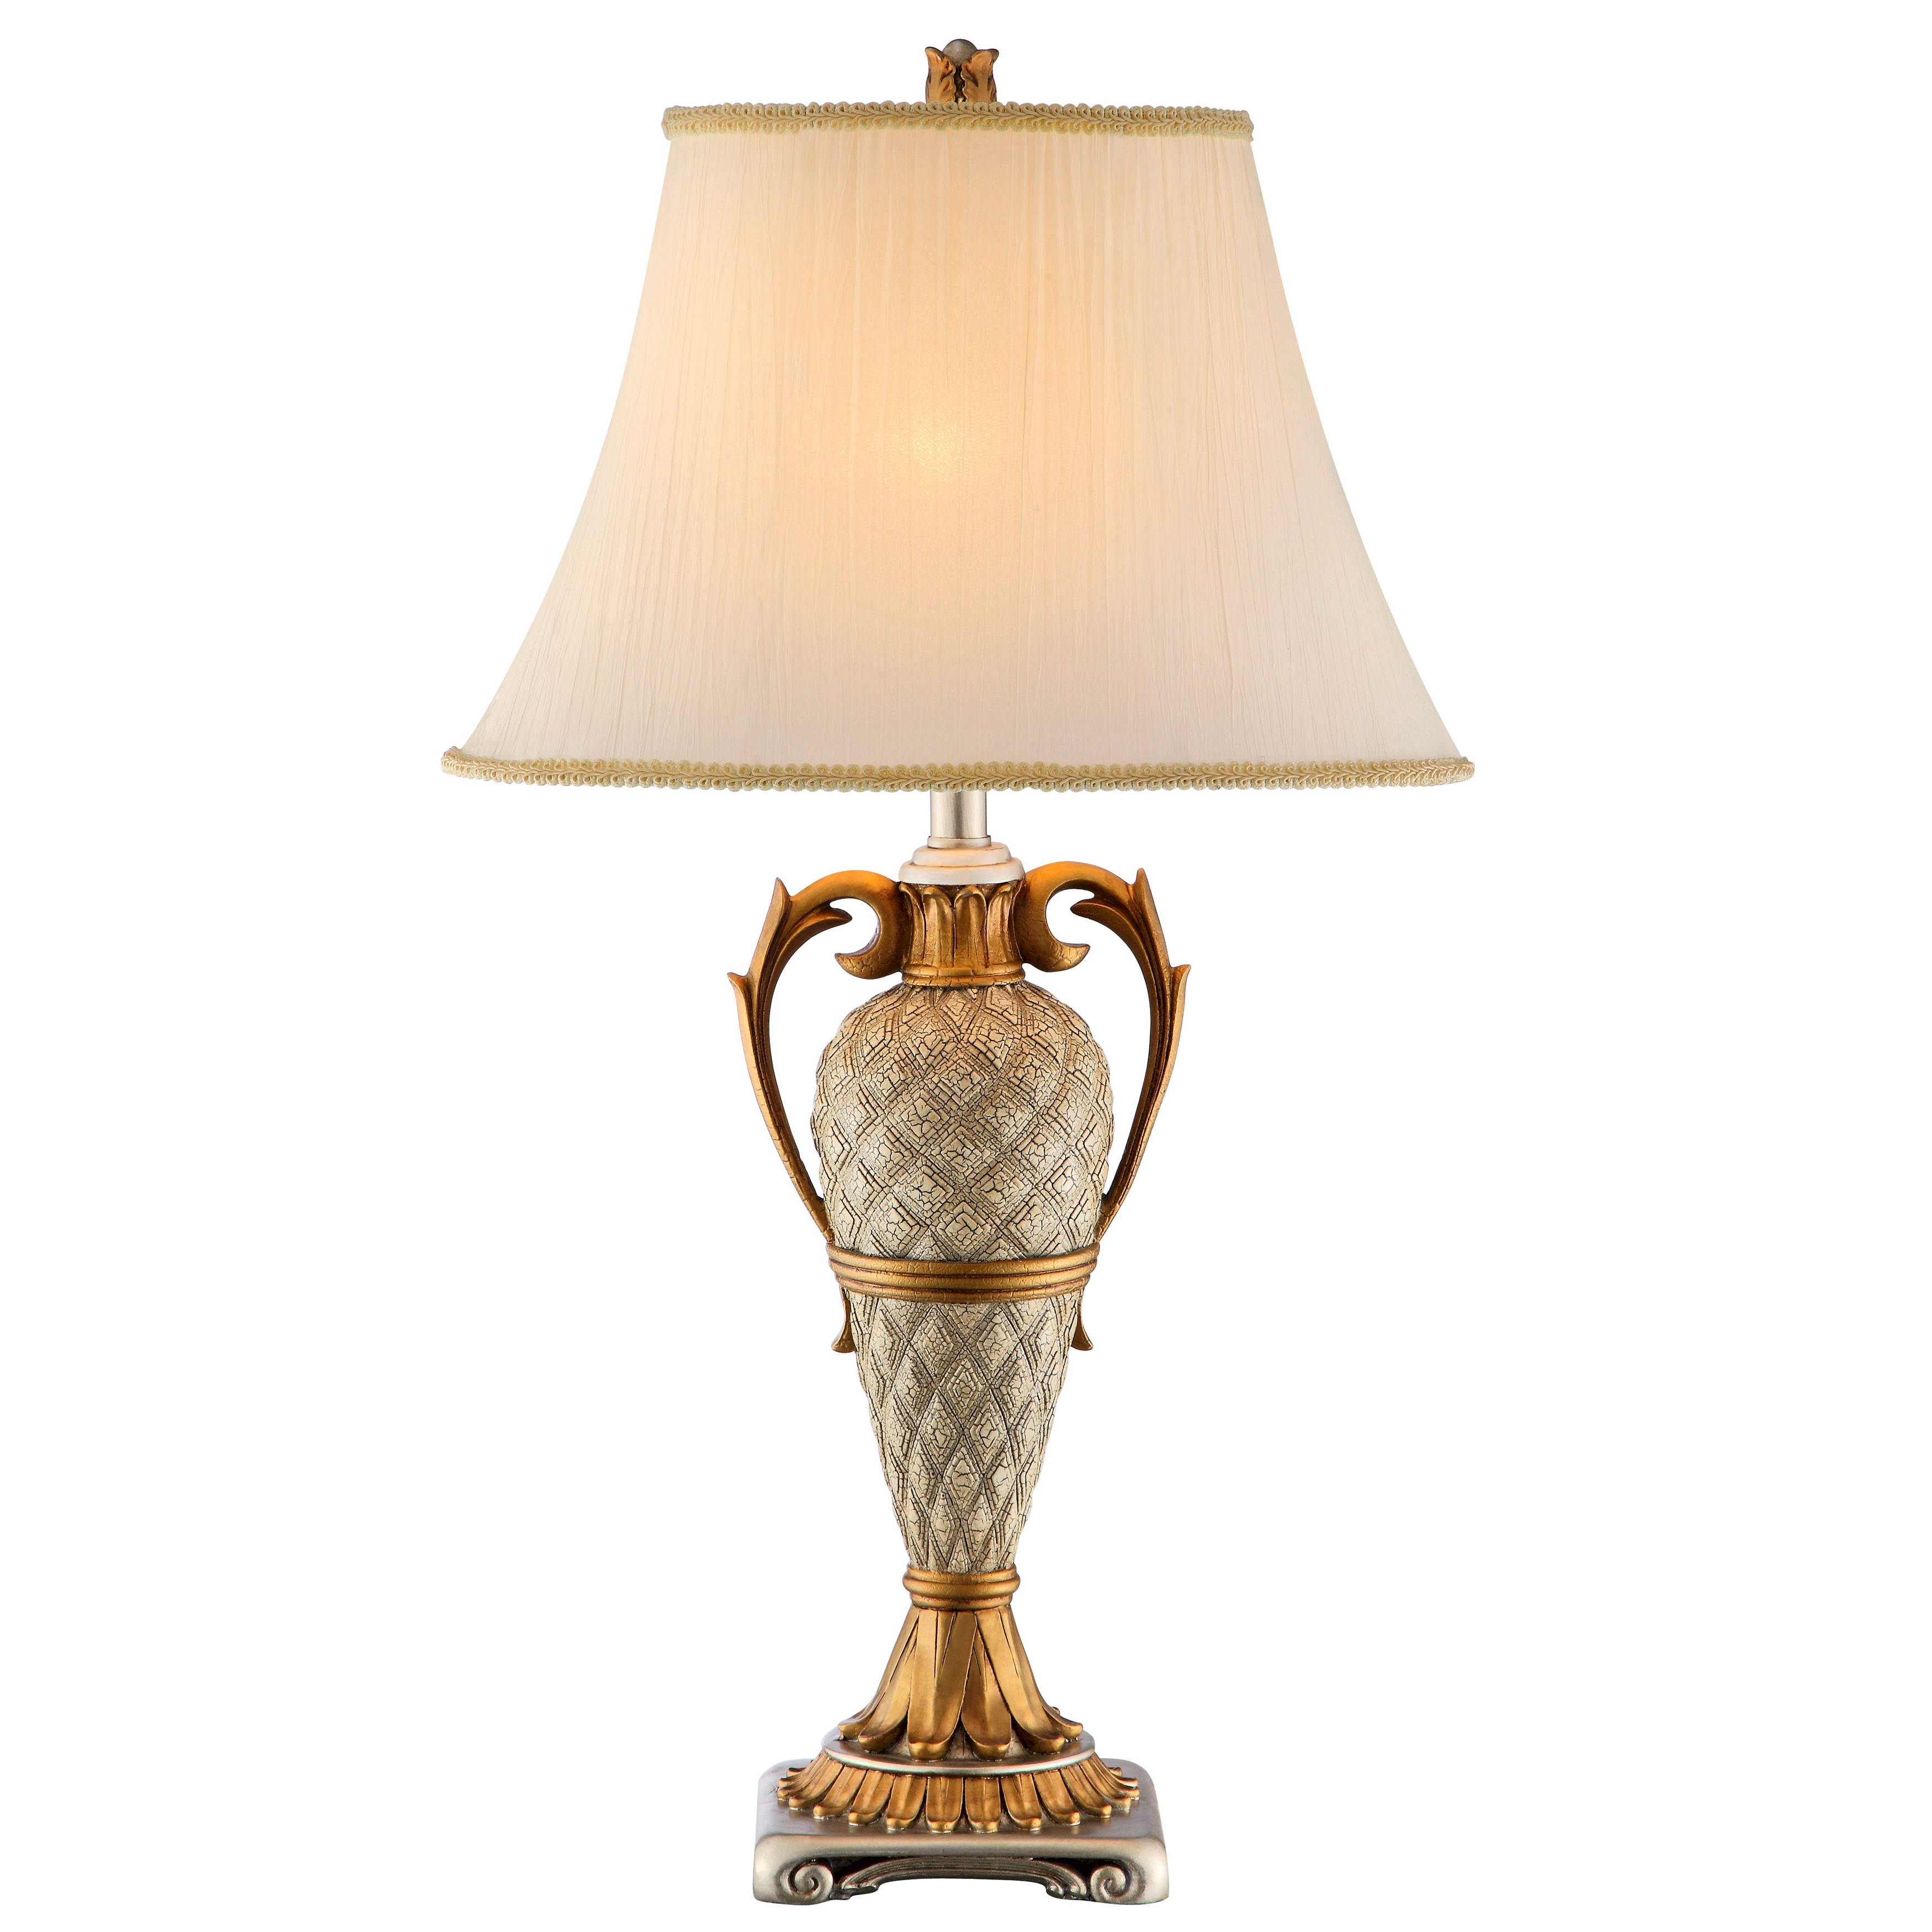 ELK LIGHTING Clarion Table Lamp (Silver and Gold) (Metal)